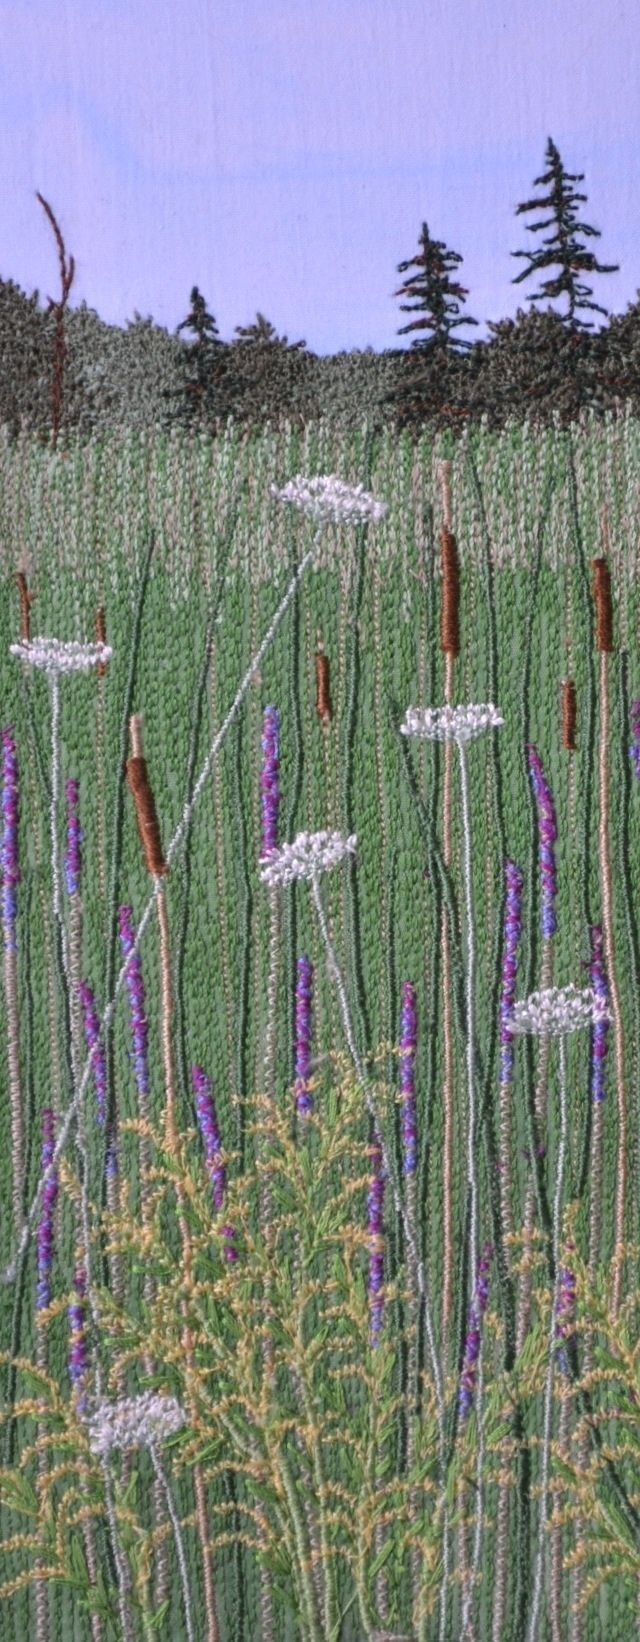 South March Highlands pictures exhibited in the Glebe fine art show   Judi Miller   September 2012   #stitched #needlework